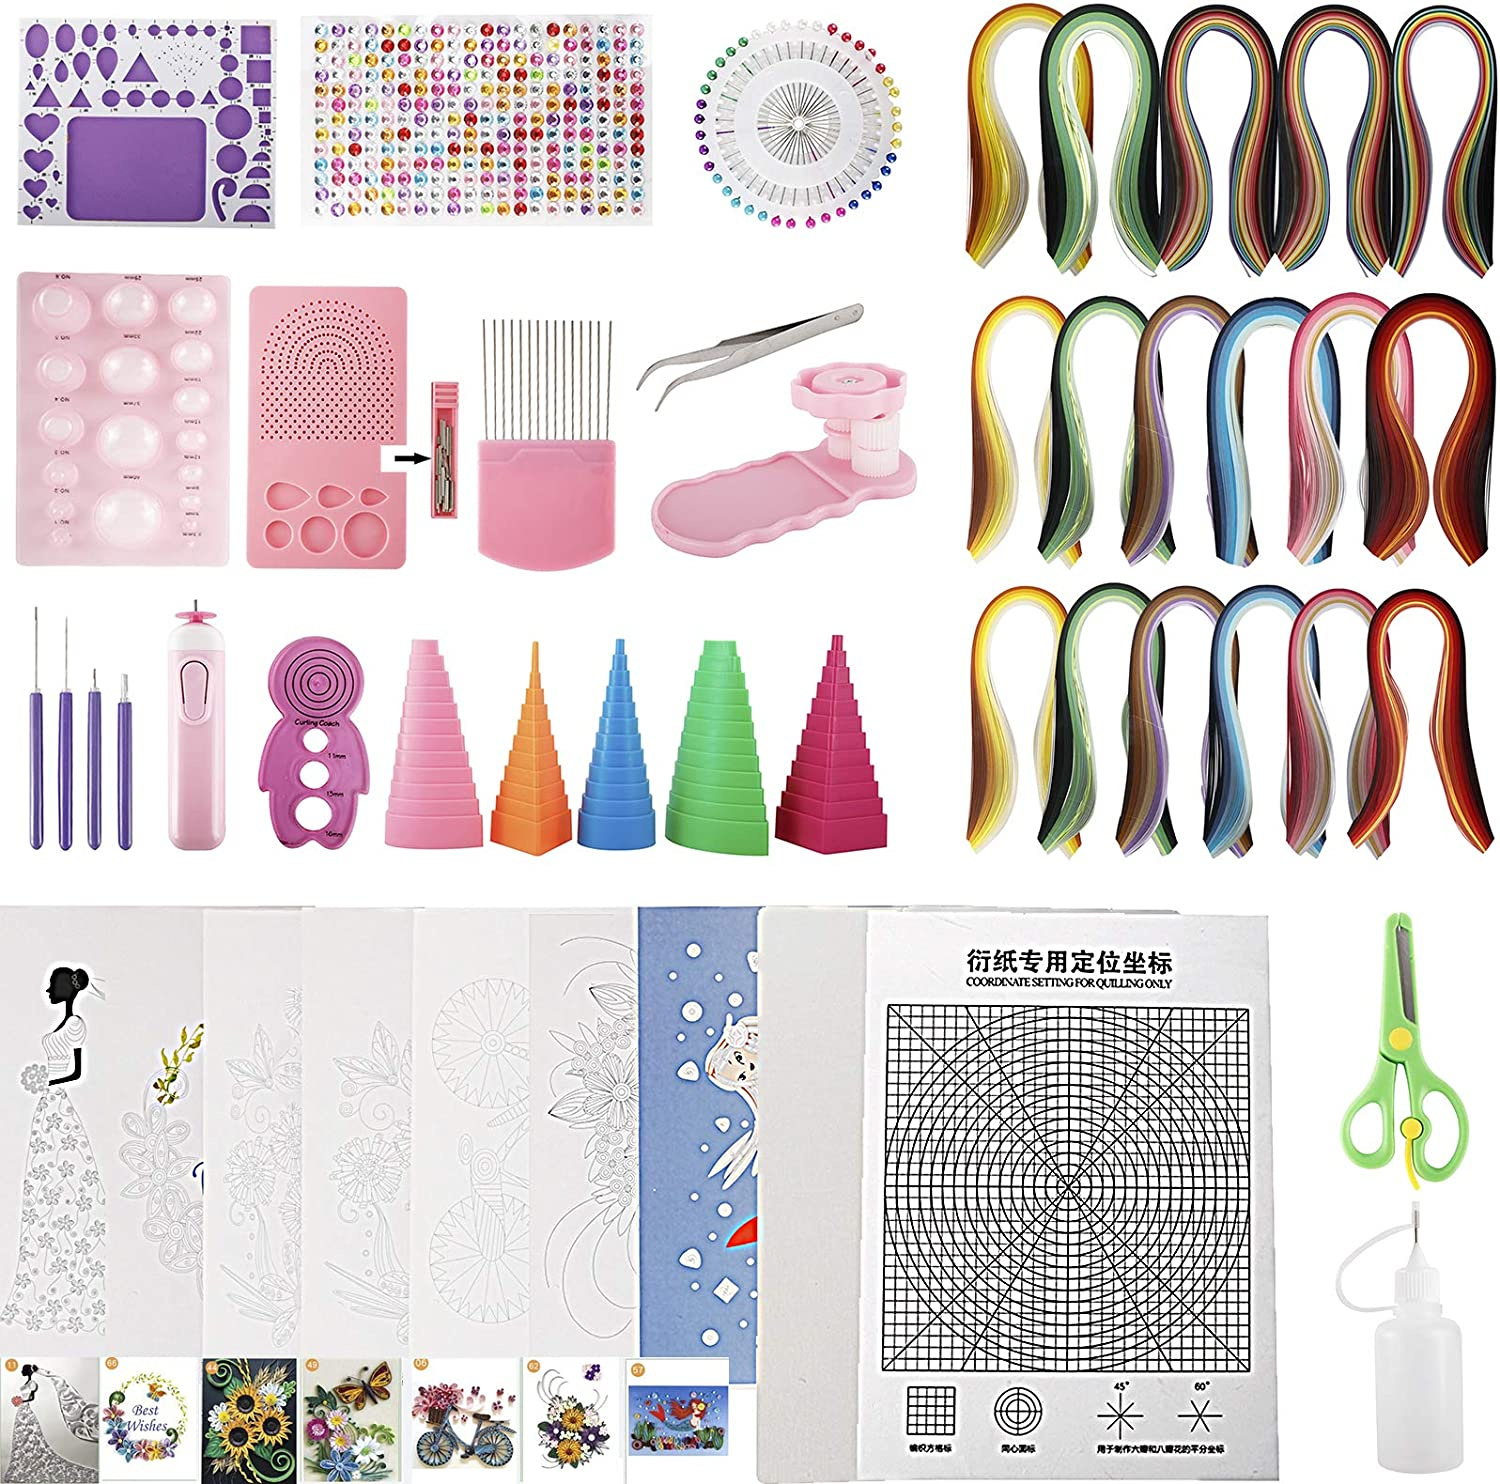 Toolly Paper Quilling 2021 spring and summer new Kit with Strips Tools low-pricing an 1860 and